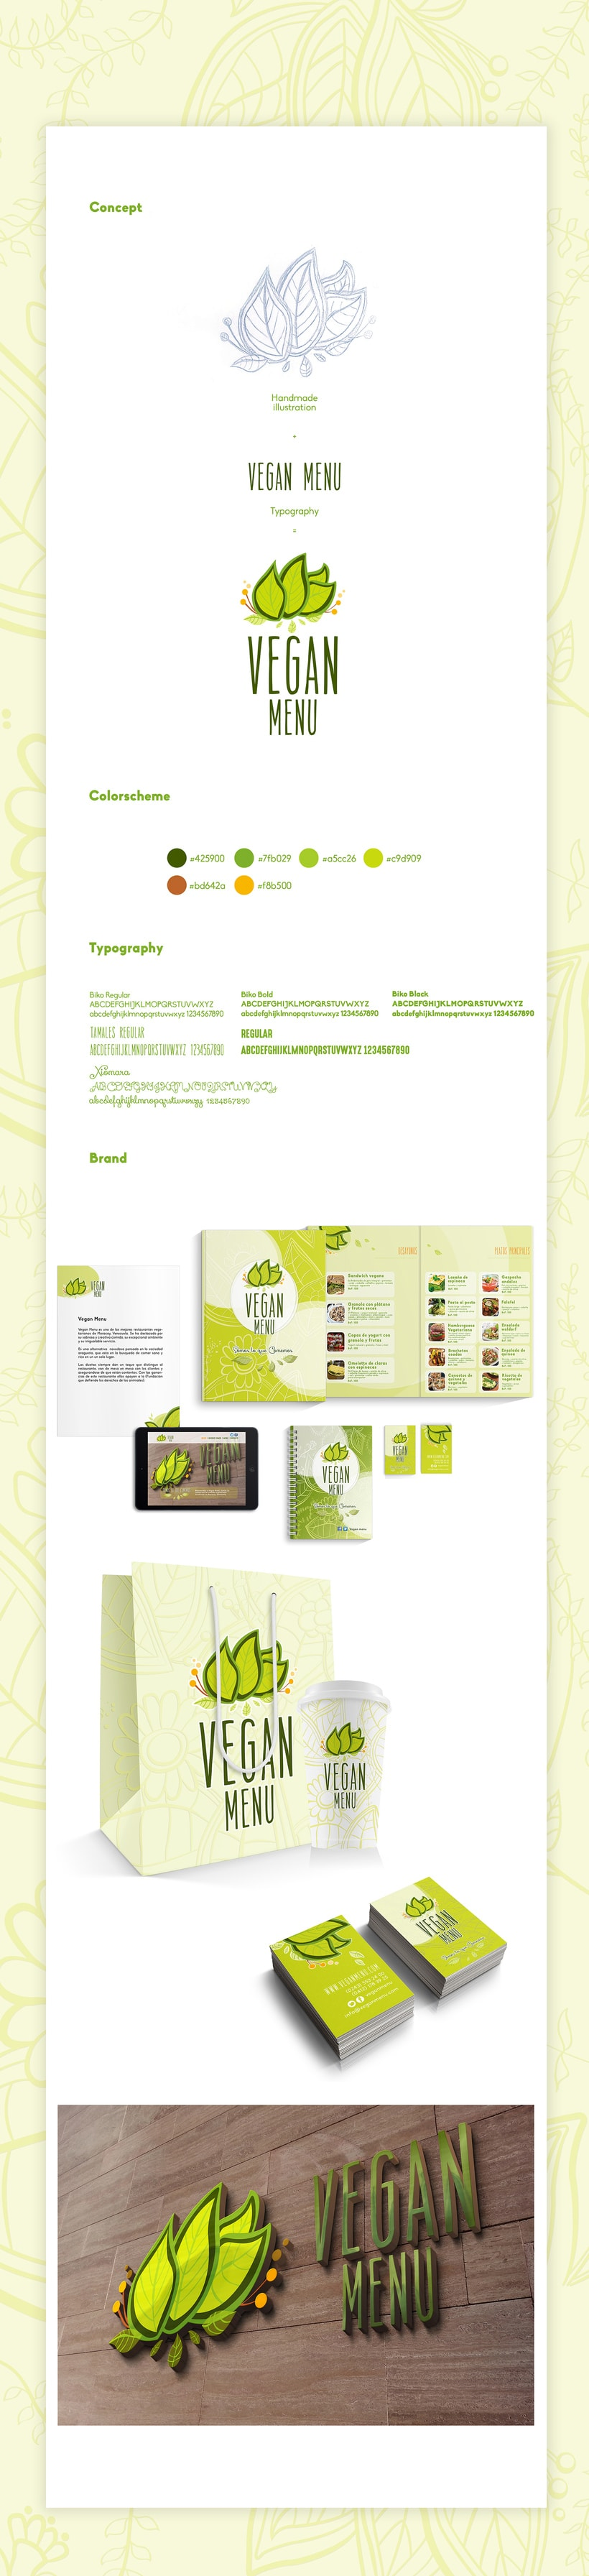 Branding Vegan menu -1